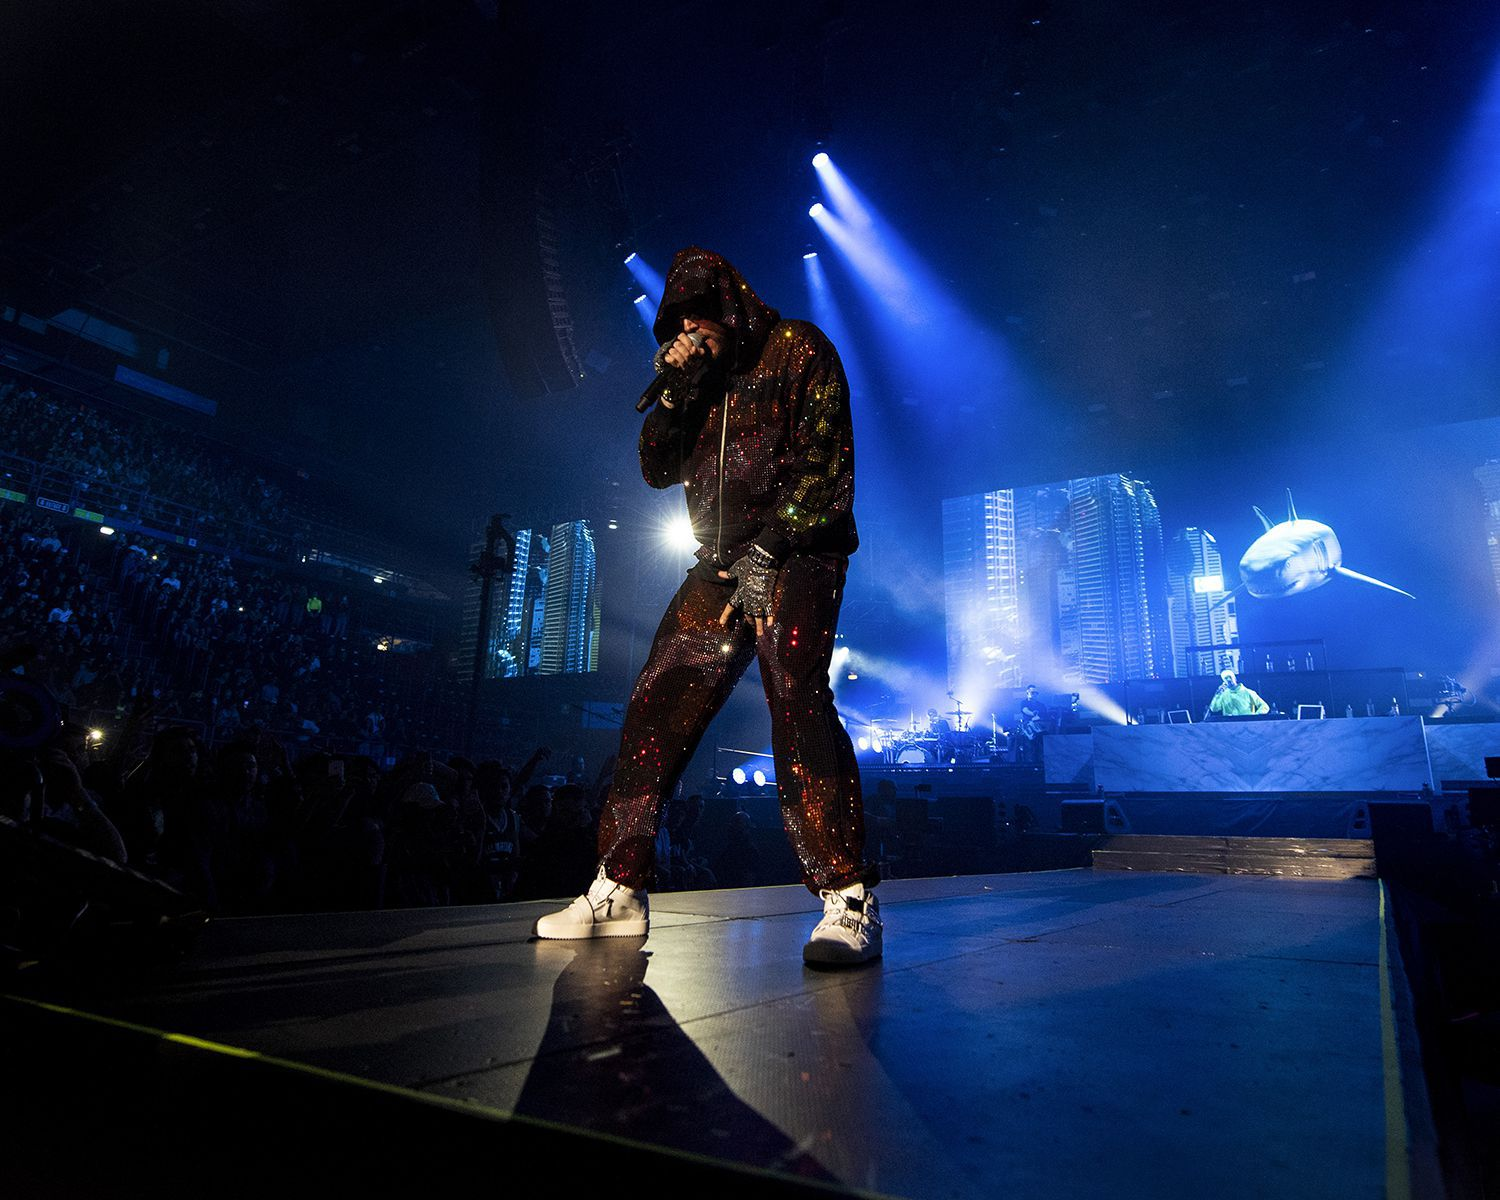 """""""Make some noise for Gue Pequeno, the past, present and future of italian rap. IUTER,supported by Swarovski, dressed Gue for his most important concert to date at the Assago Forum ."""